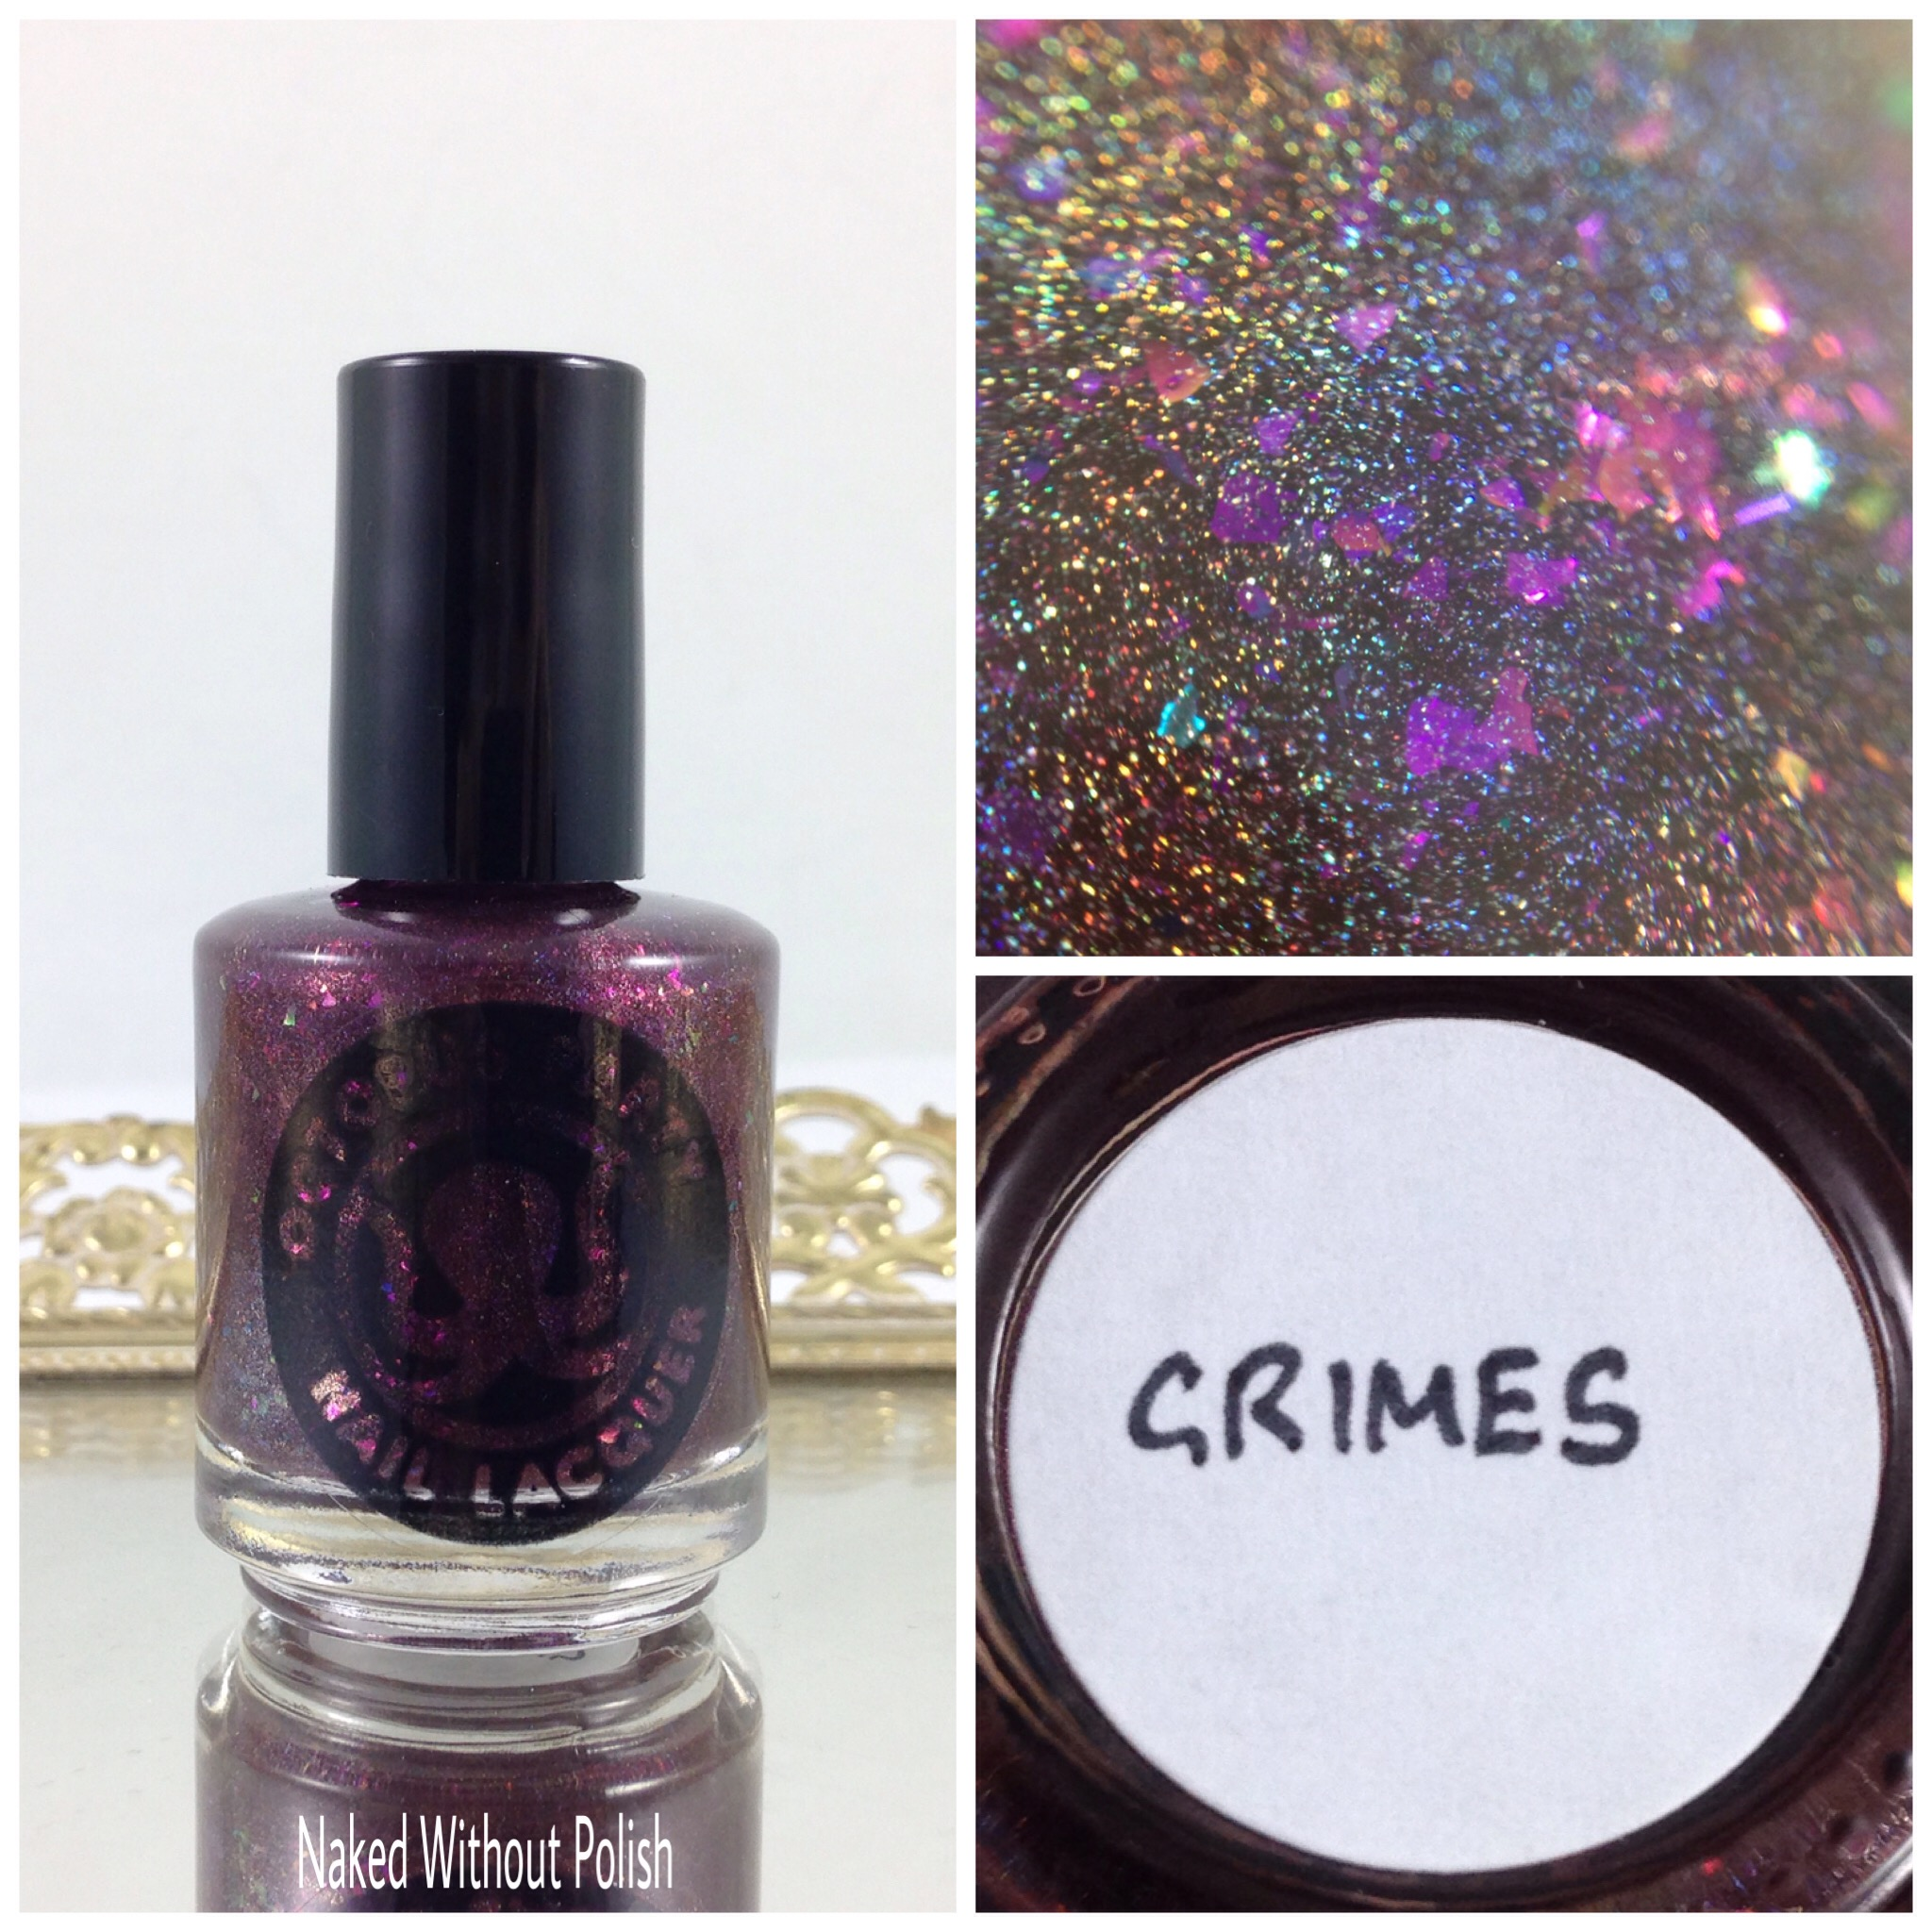 Octopus-Party-Nail-Lacquer-Grimes-1